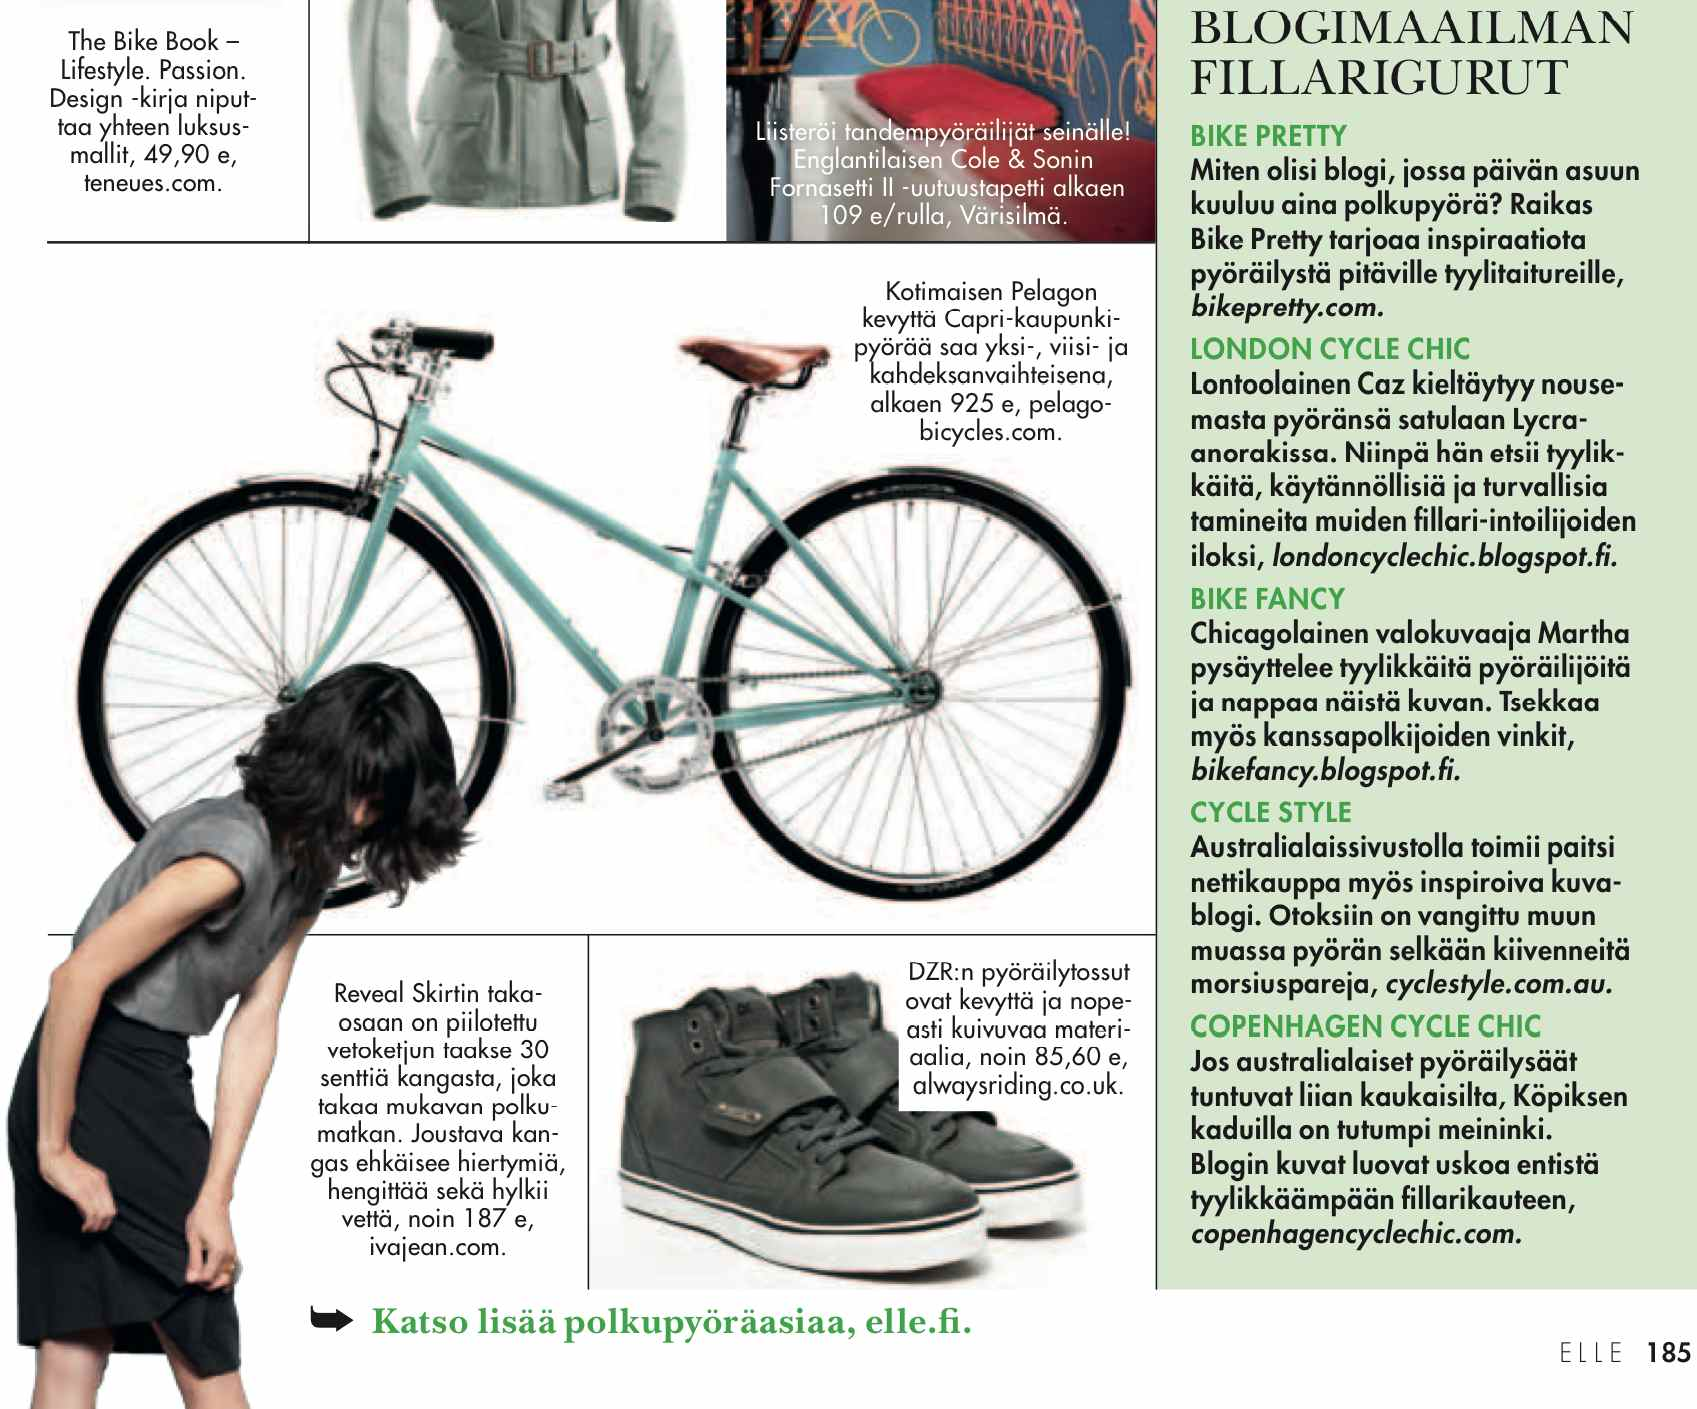 bike pretty, bike pretty, pretty bike, girls on bikes, outfit ideas, cycle style, fashion bike, bike fashion, bike chic, chic bike, bike style, girl on bike, bike lady, cycle chic, toukokuu 2013, elle, elle finland, iva jean